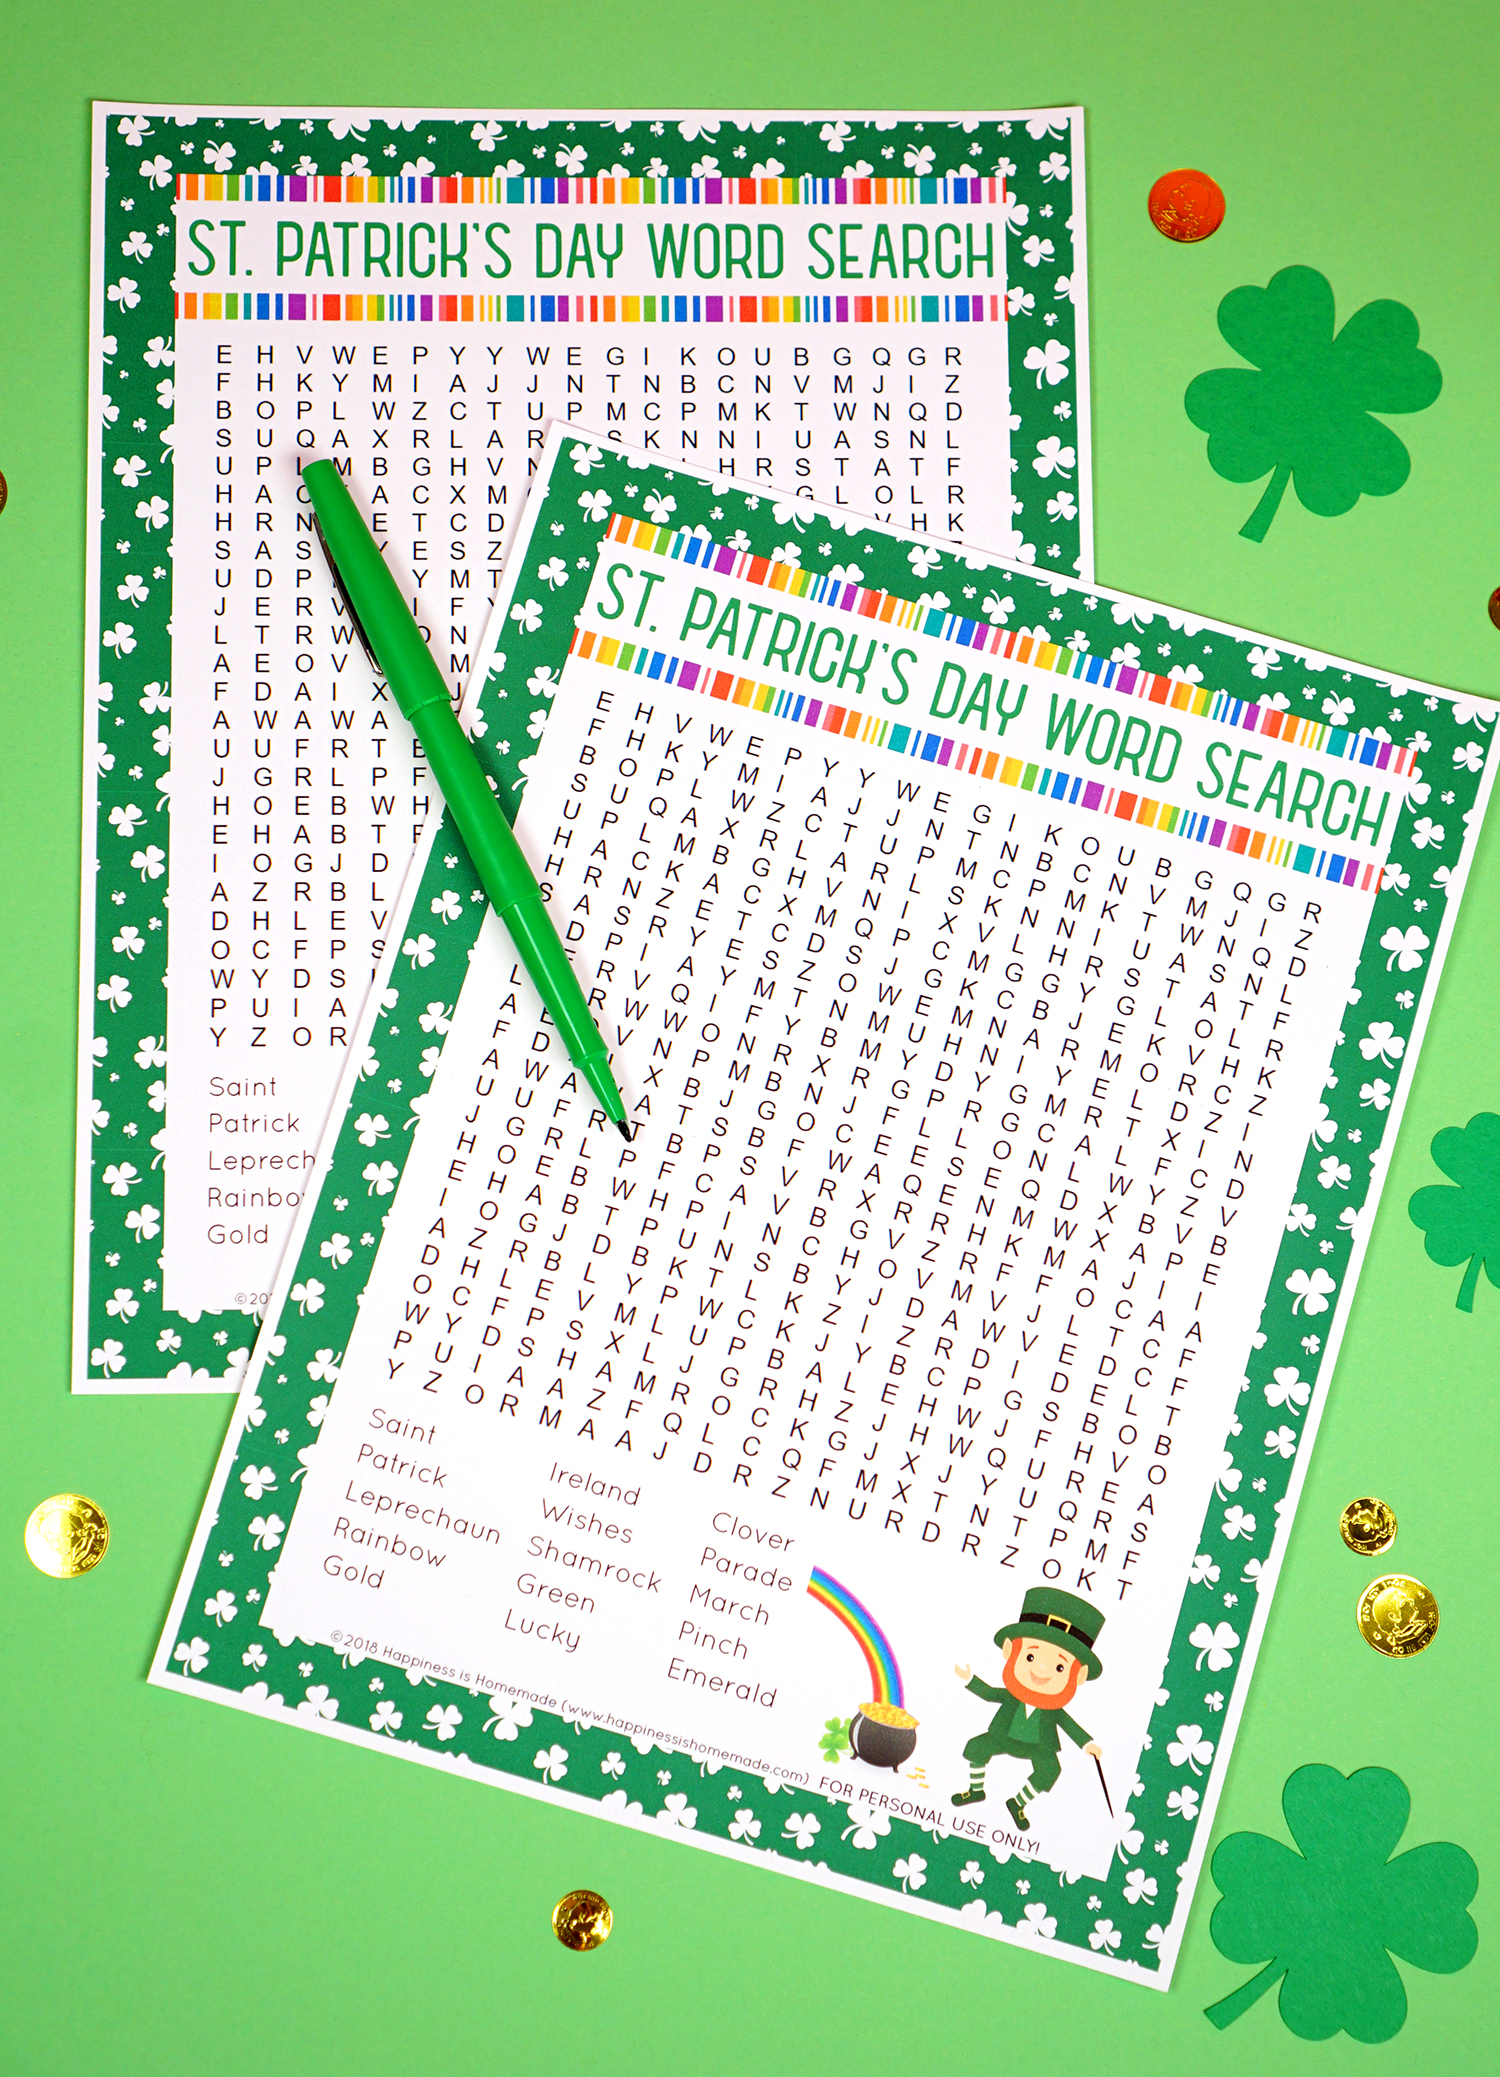 hight resolution of St. Patrick's Day Word Search Printable - Happiness is Homemade